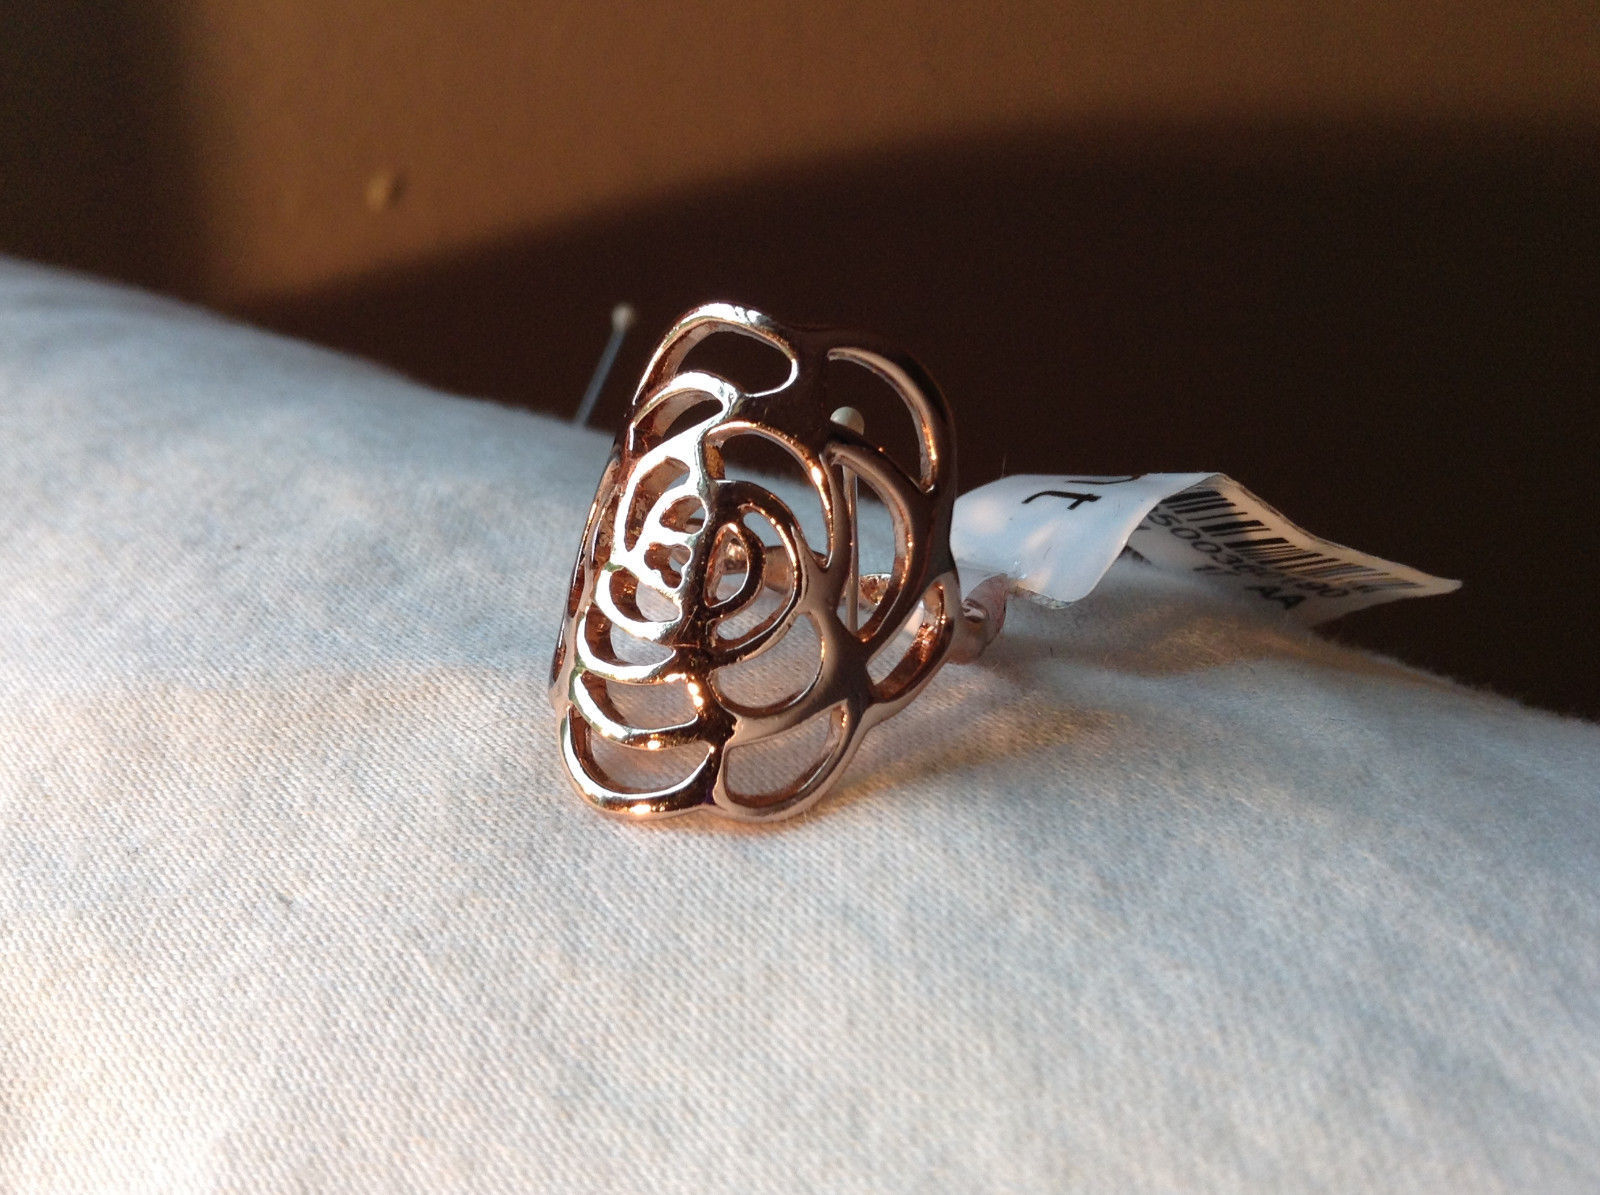 Rose Flower Design Rose Gold Tone Fashion Ring Size 6.25 and 7.5 by Rigant